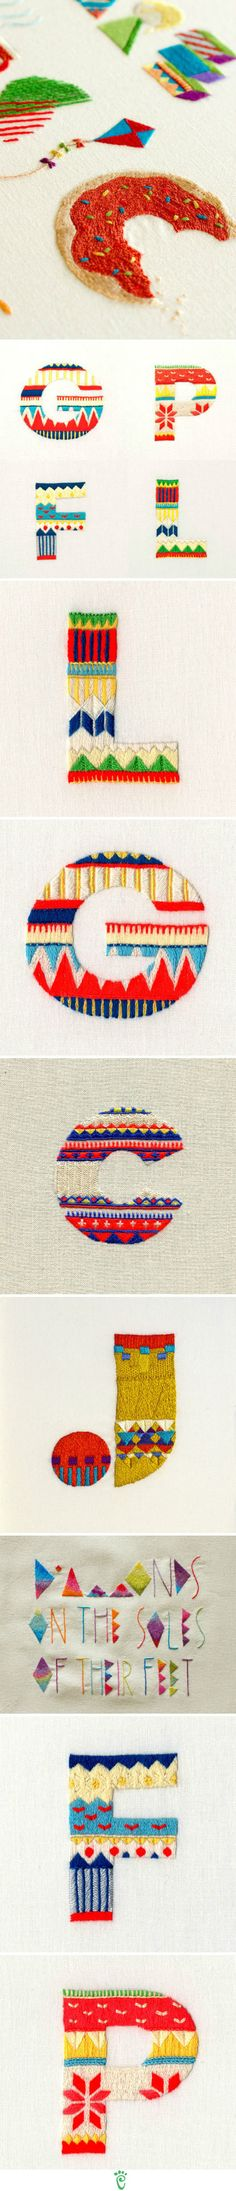 Embroidered Monograms using interesting patterns. Because no one needs anymore of those Script-Chevron-Monogram-Girly things...